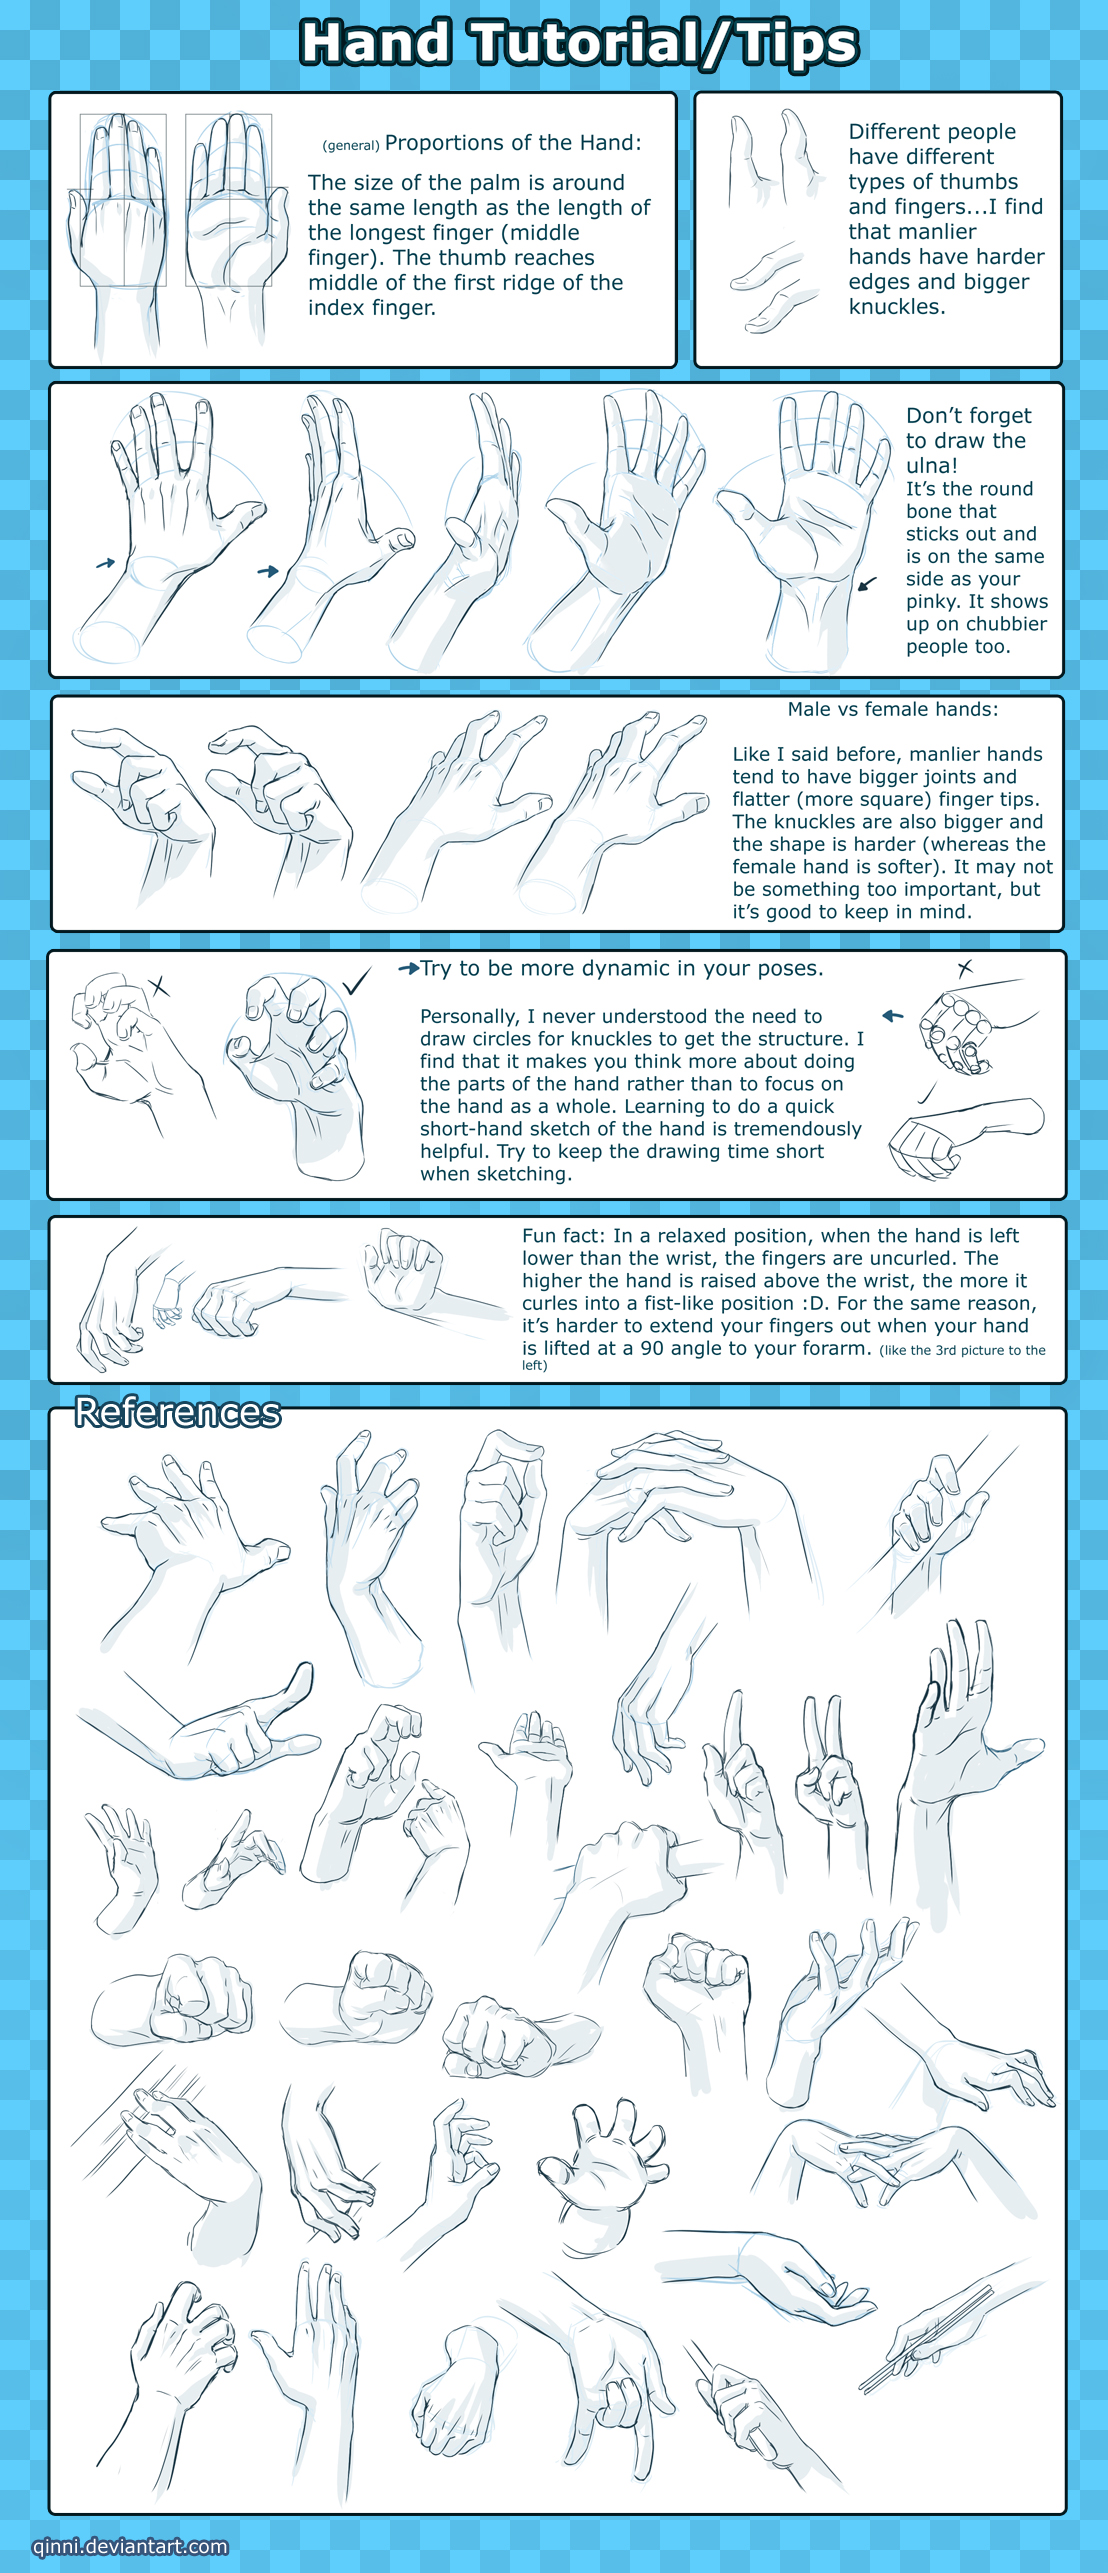 Hand Tutorial -Tips+Reference- by Qinni on DeviantArt